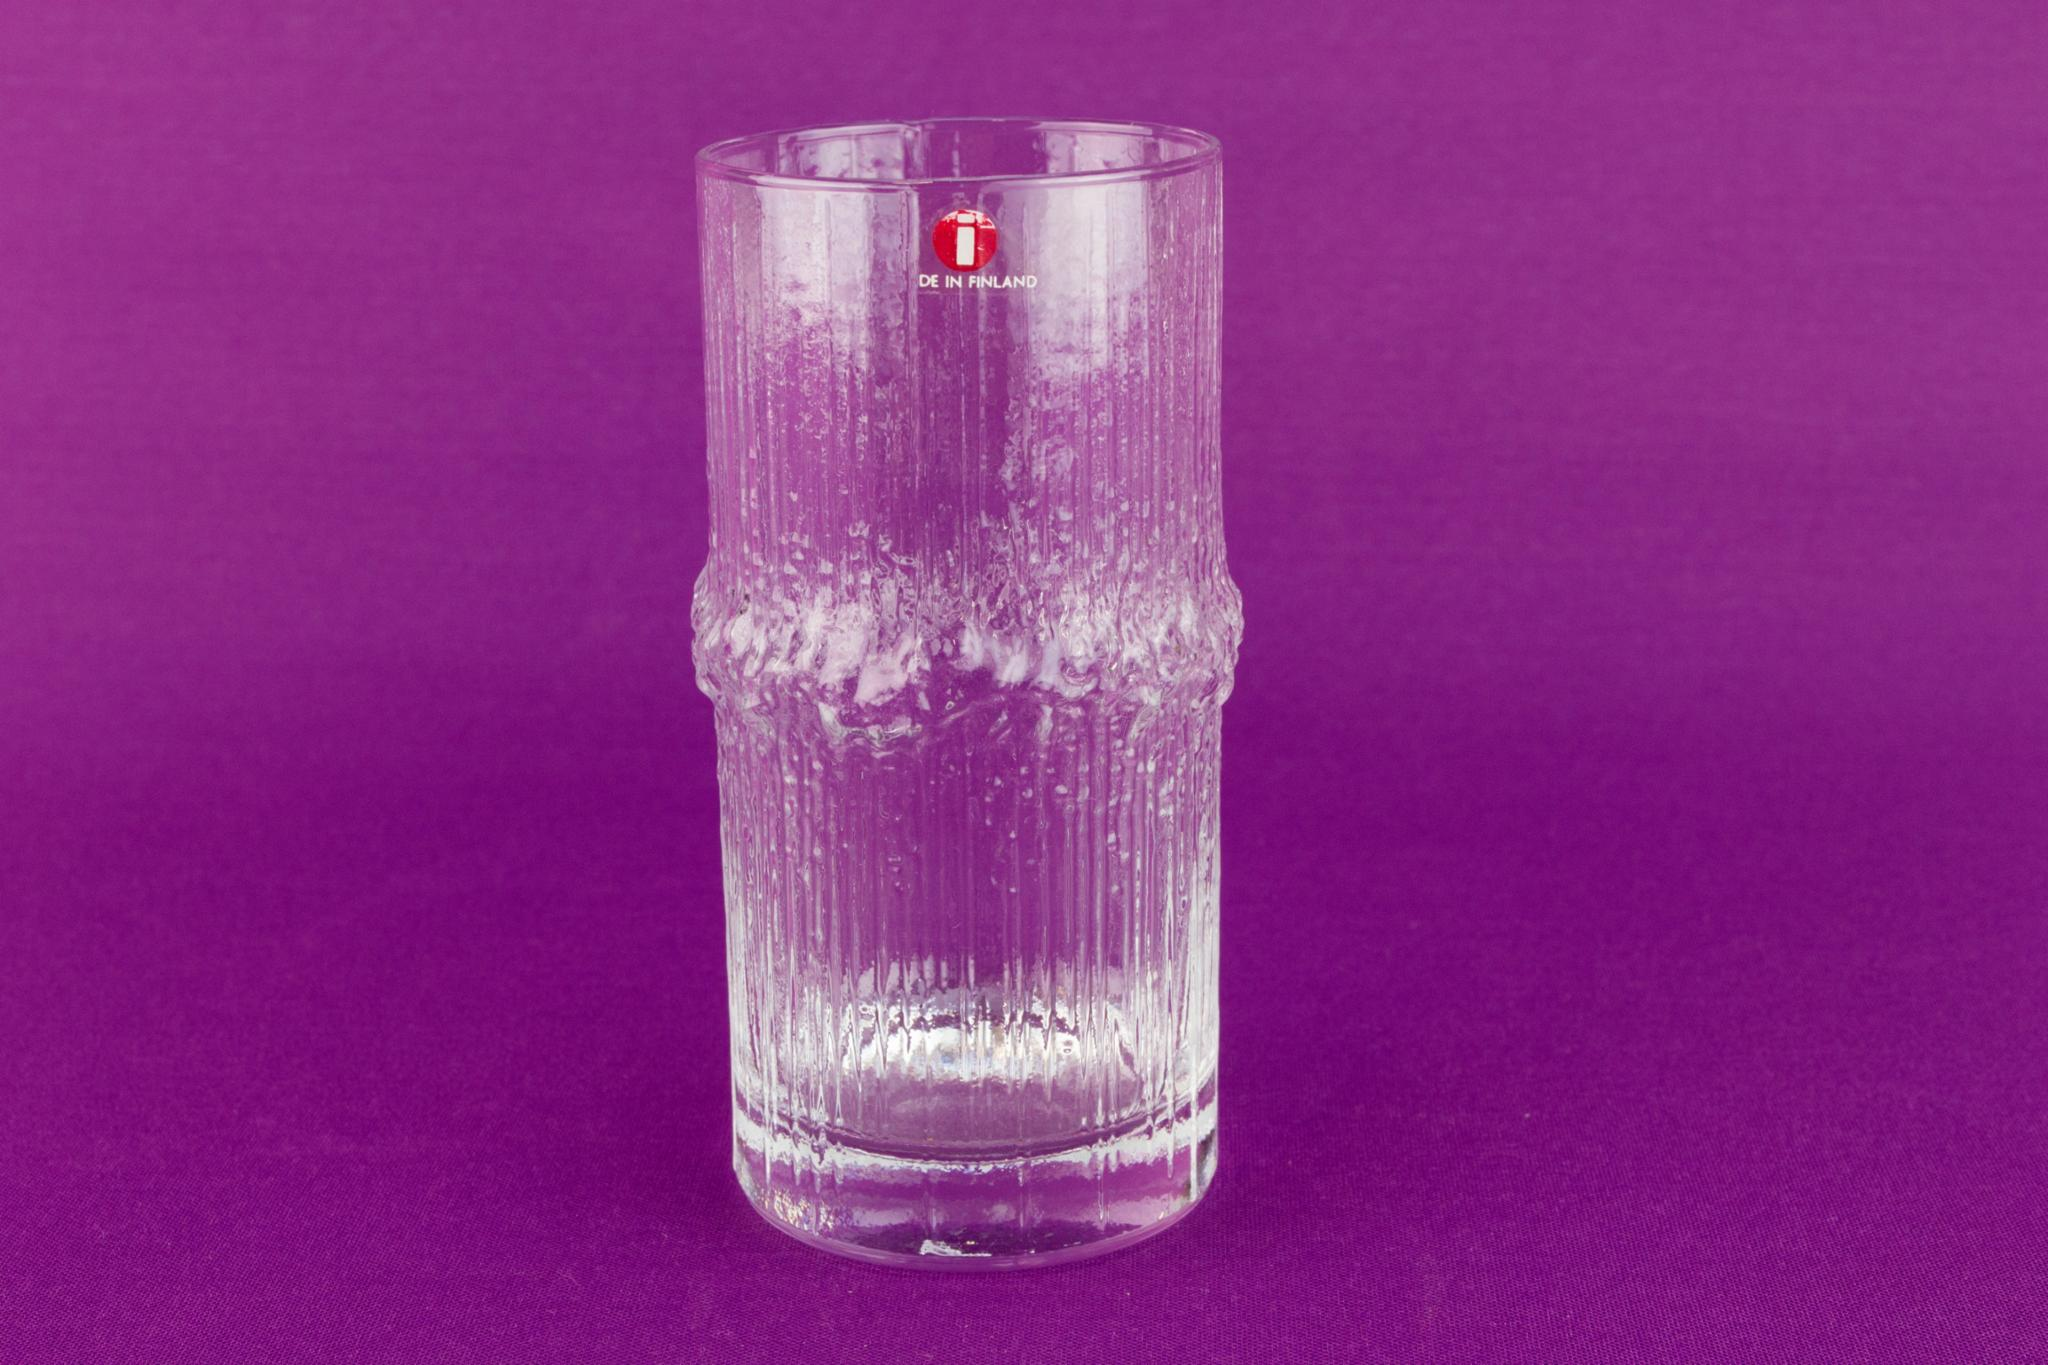 3 Highball glasses by Iittala, Finland 1970s